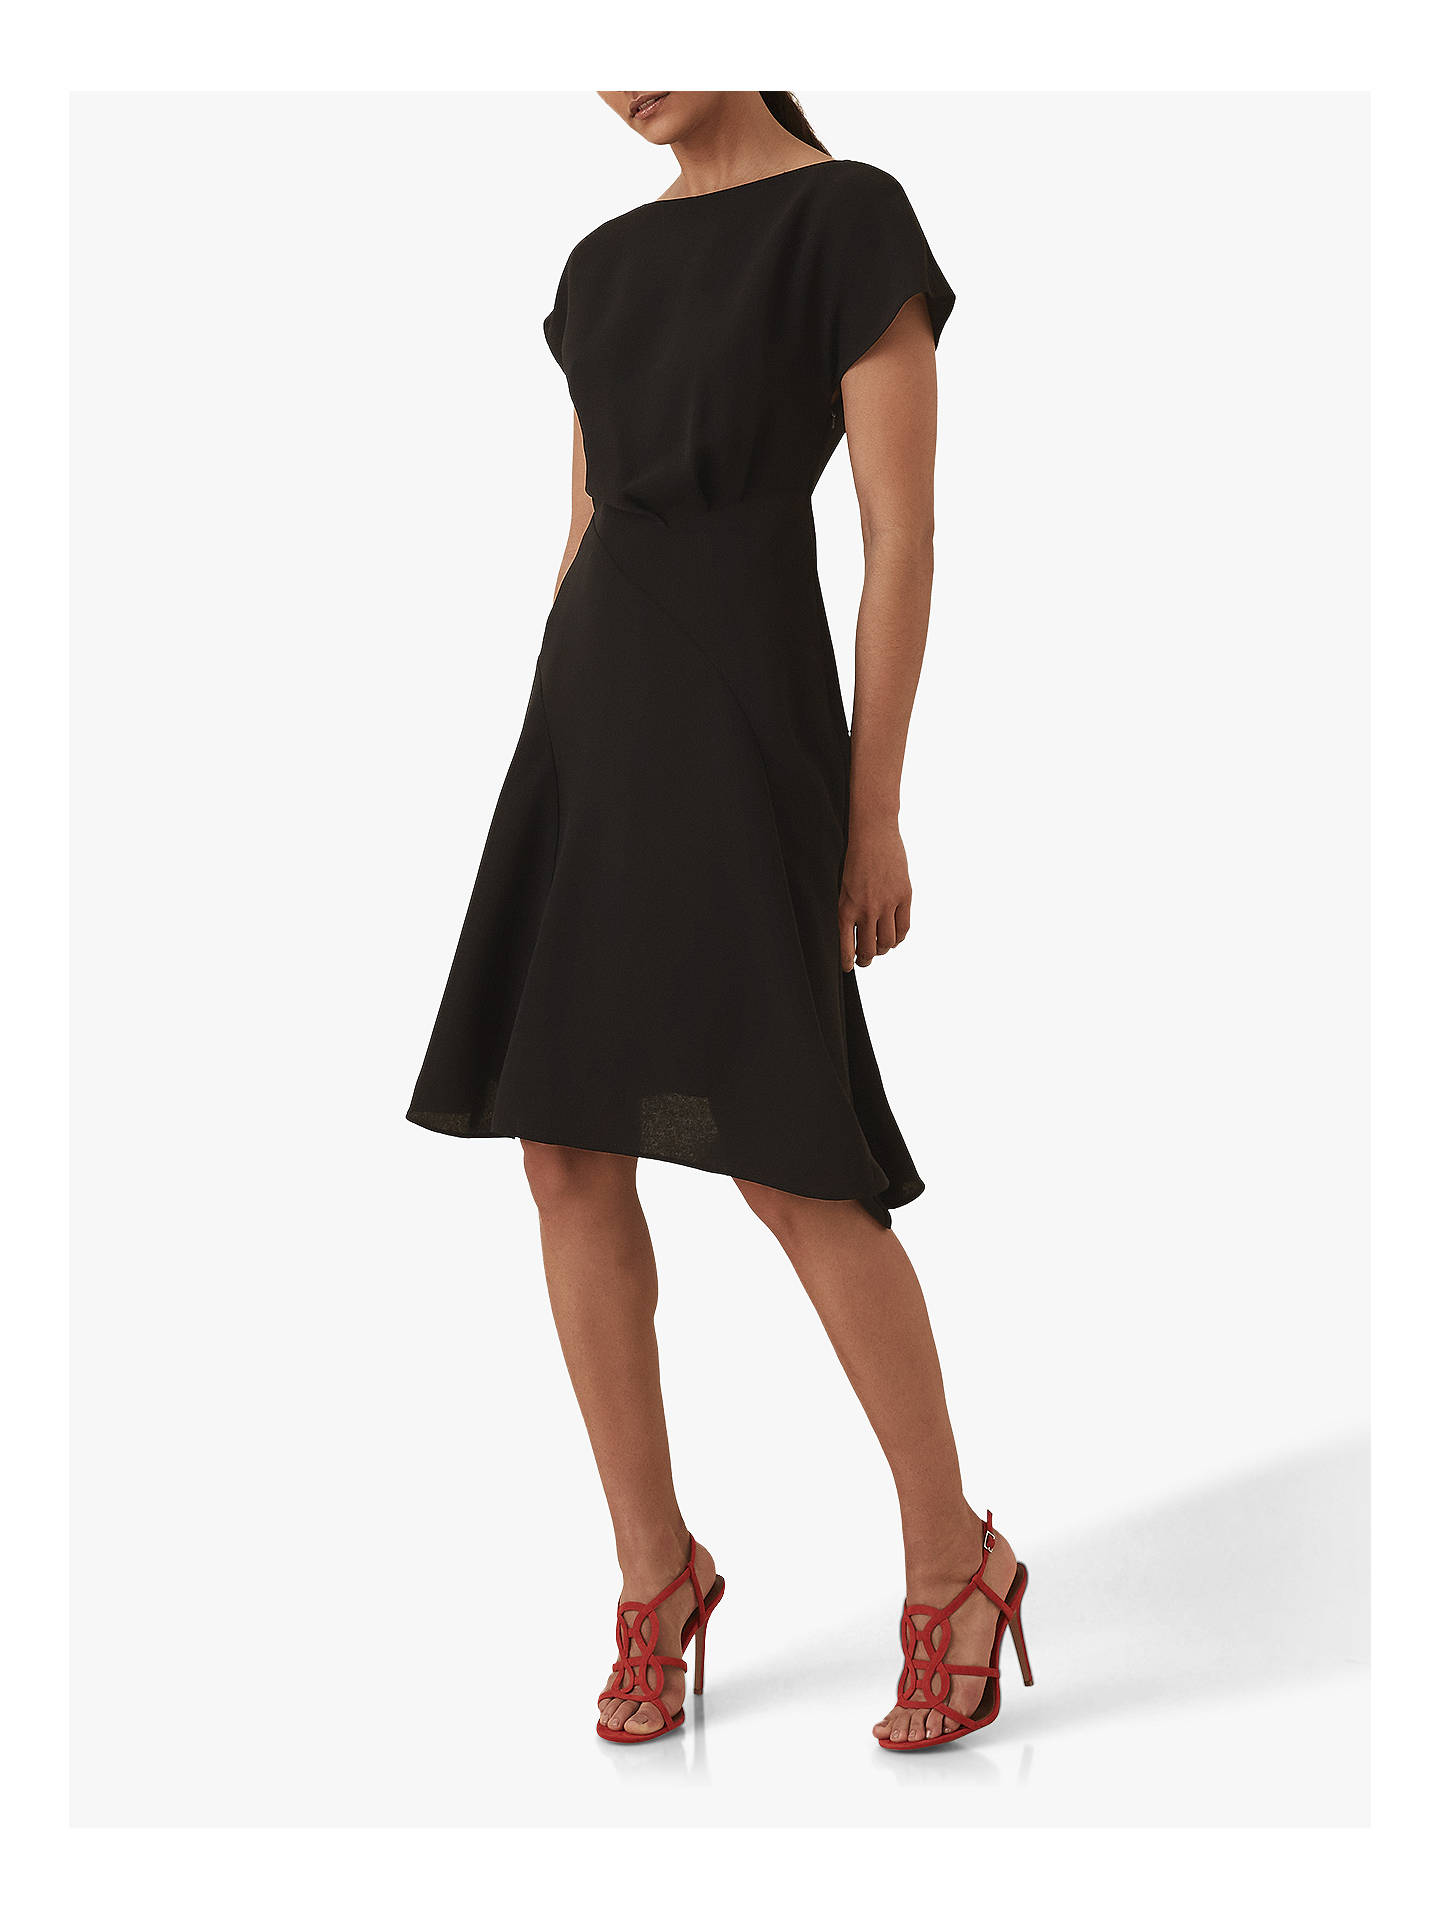 Reiss Victoria Cap Sleeve Dress at John Lewis & Partners